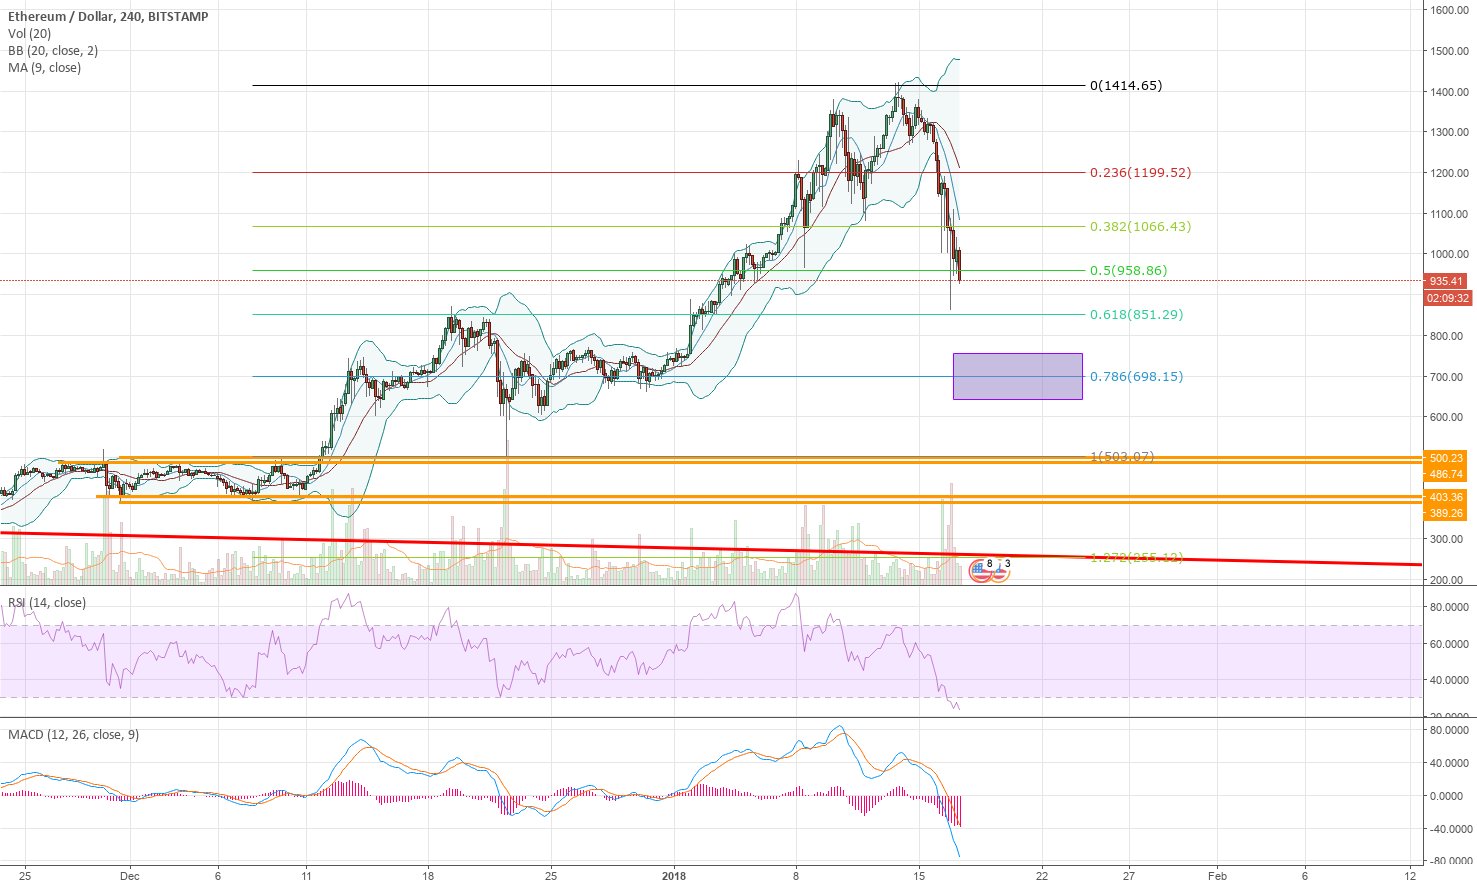 Area to watch for ETH